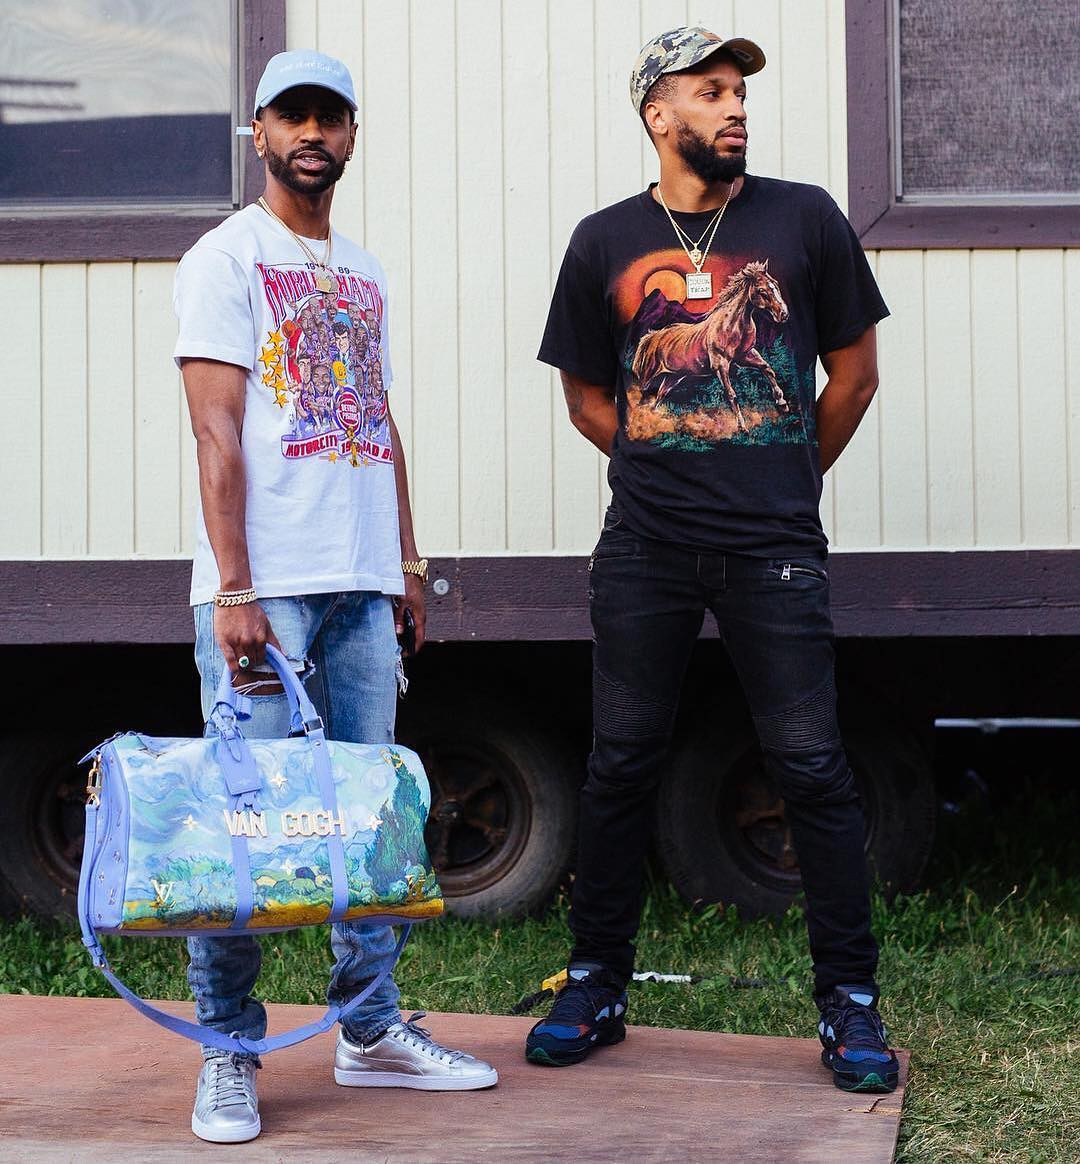 Big Sean spotted with Louis Vuitton x Jeff Koons bag